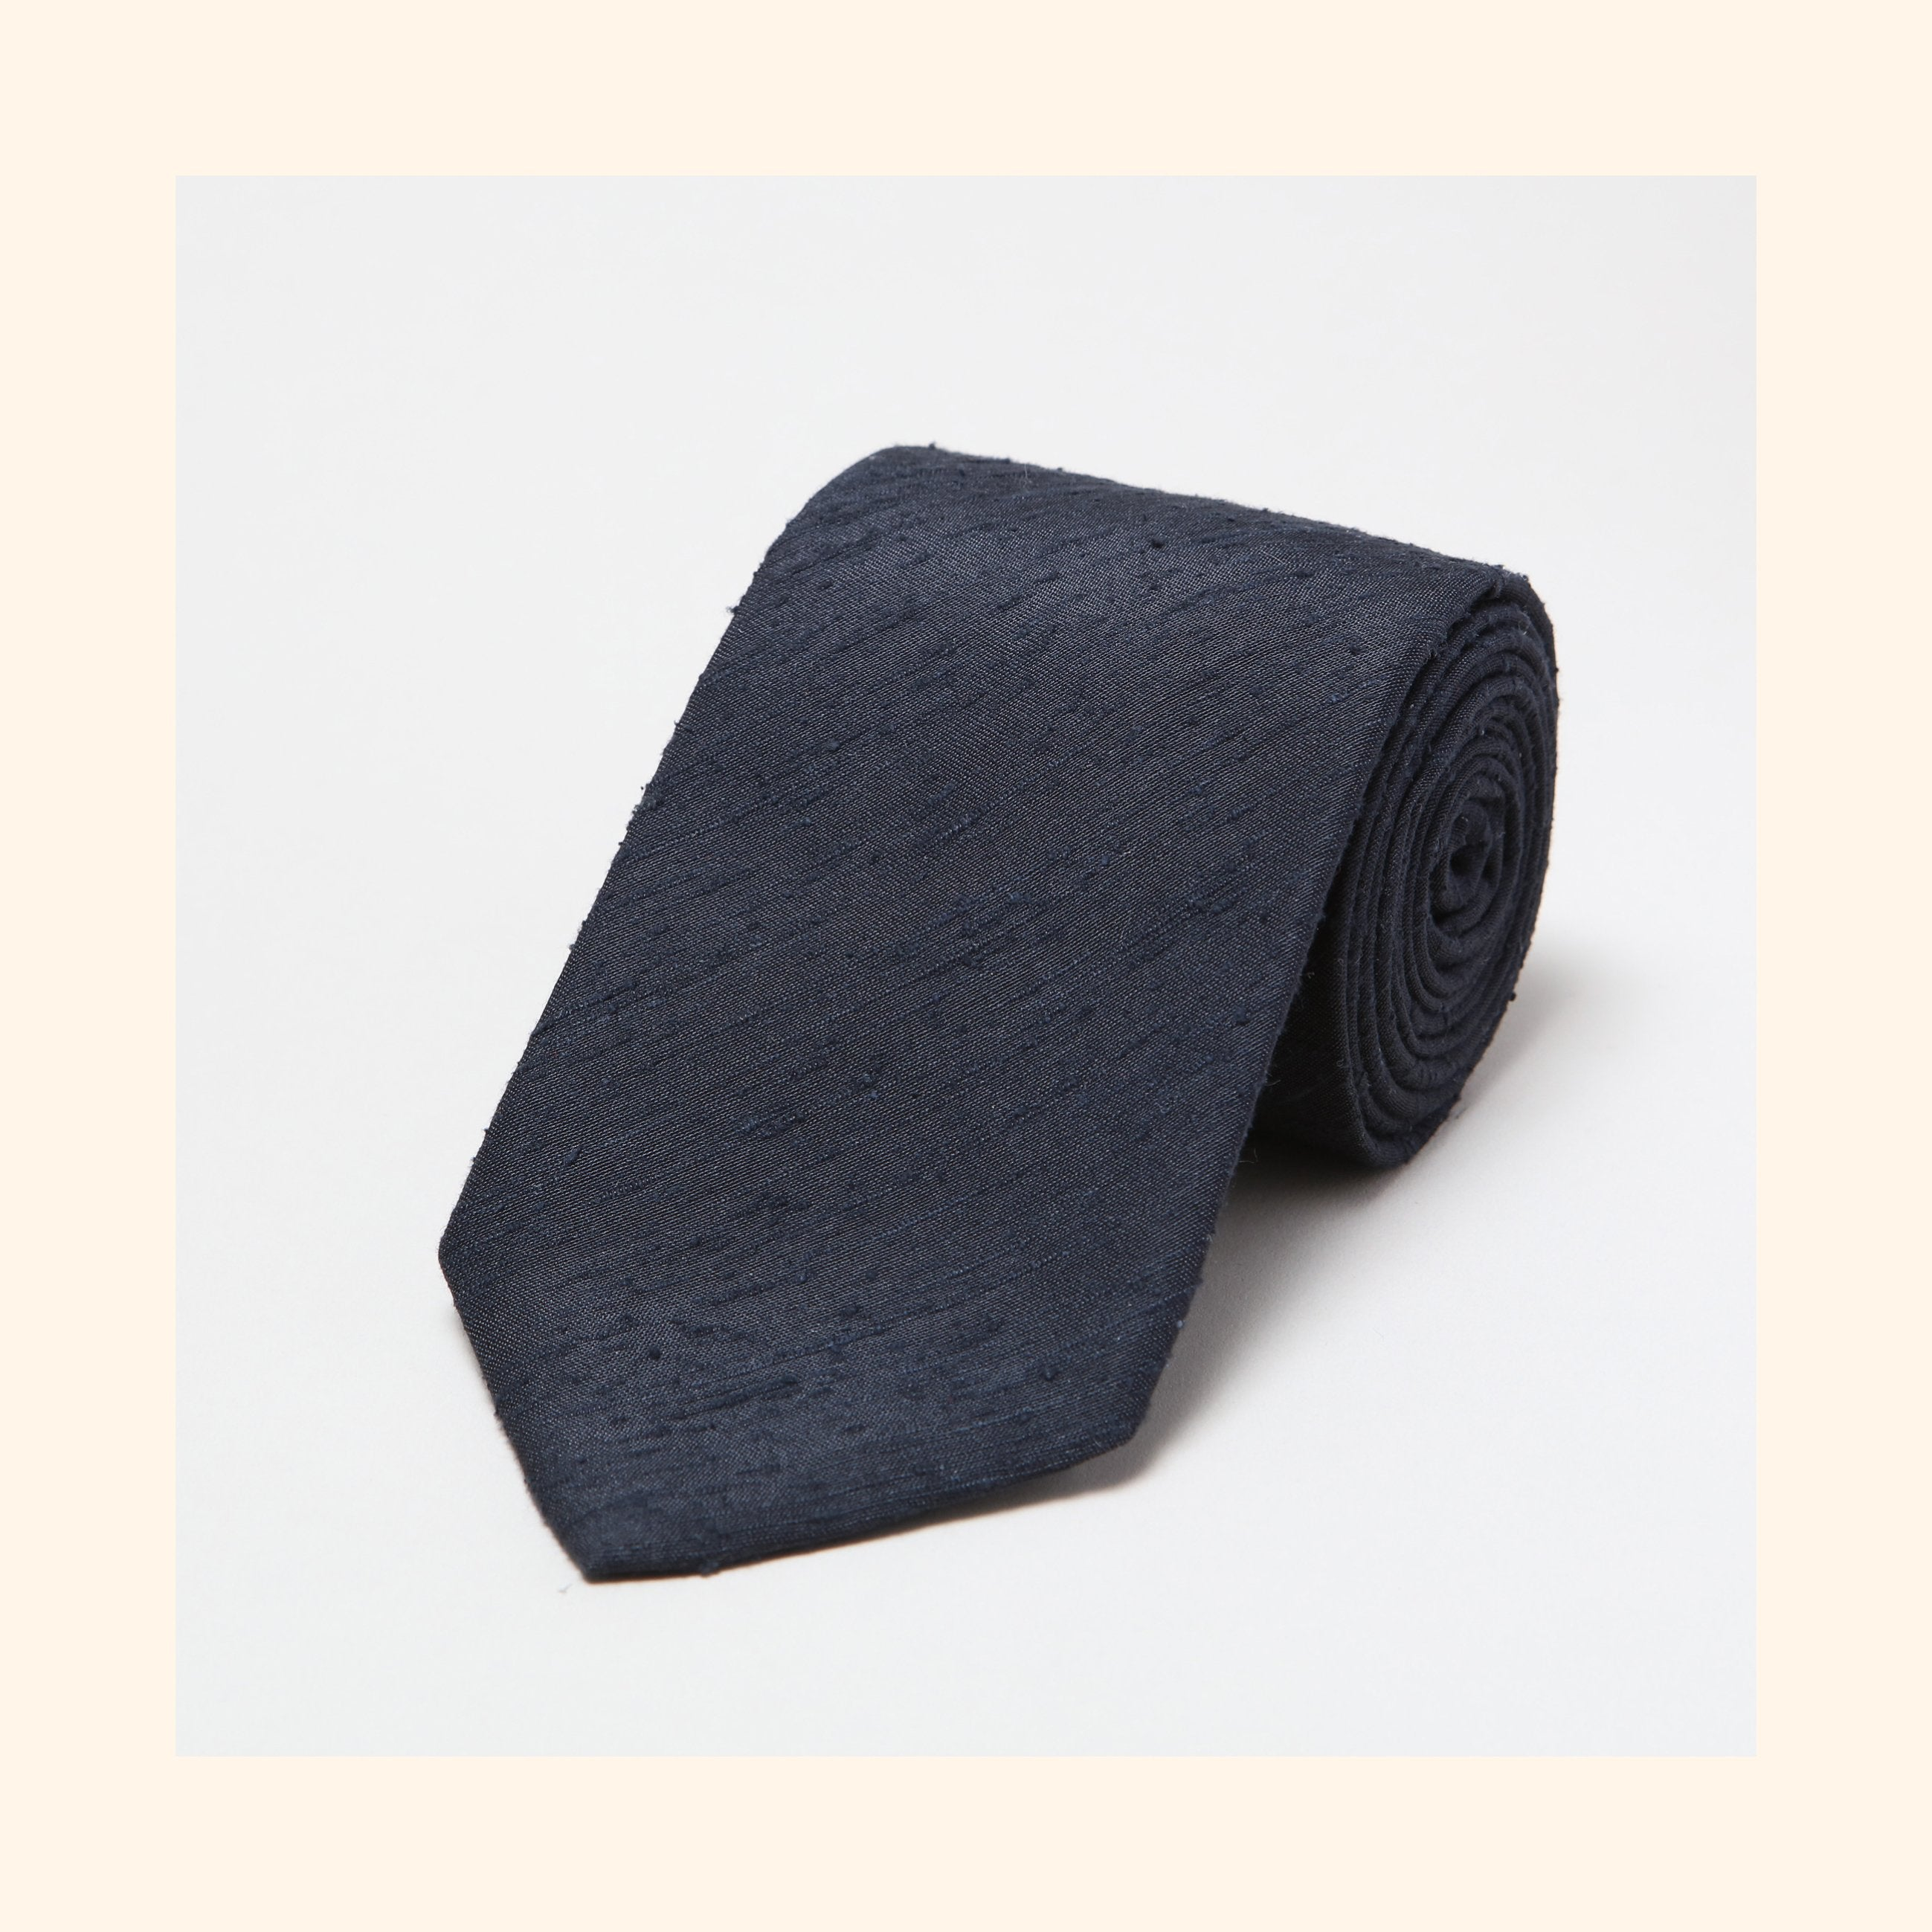 № 056 - Black Plain Shantung Silk Tie